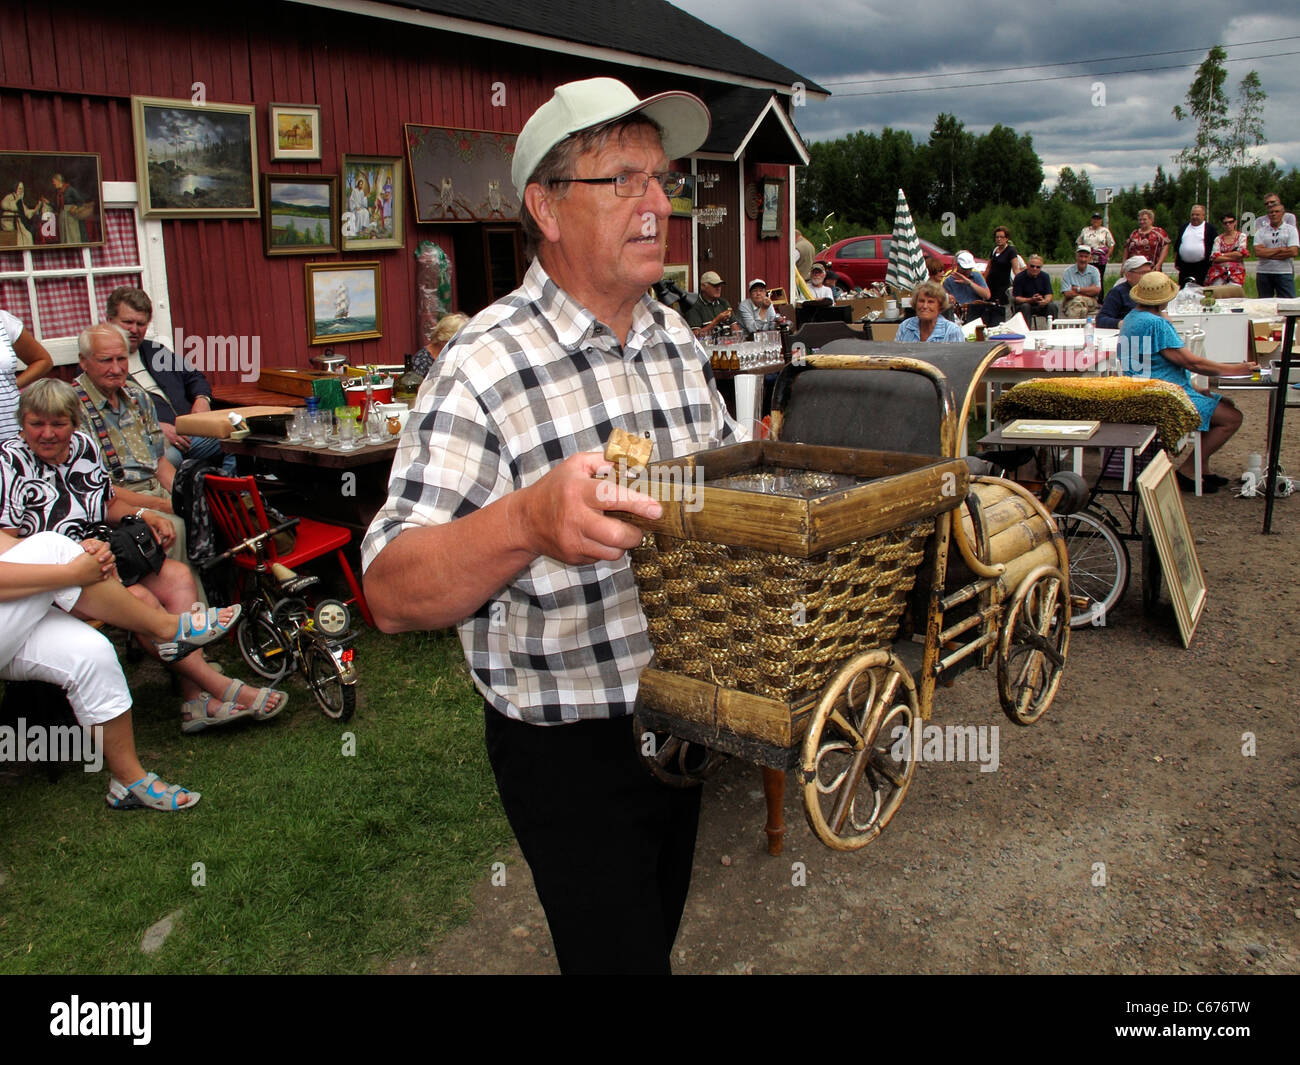 Scandinavia Finland open-air Auction at Antique house, selling offering second-hand household products - Stock Image